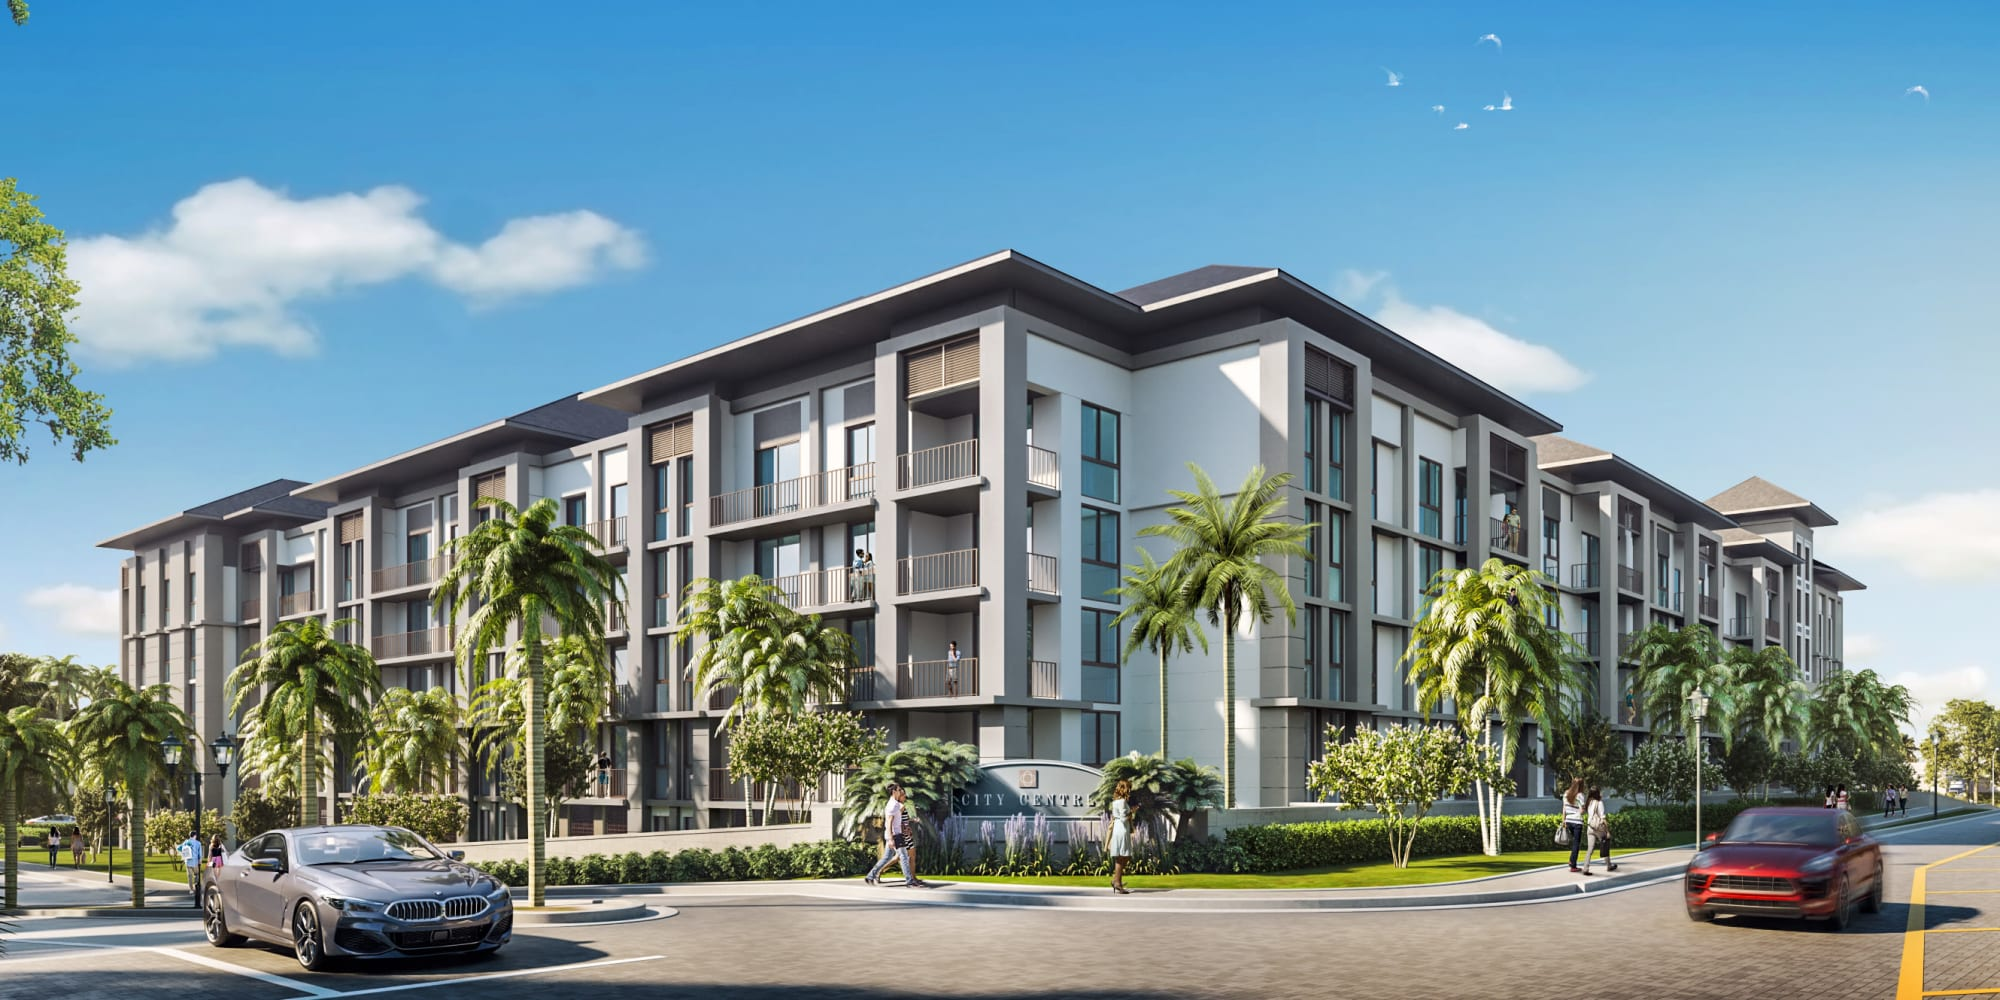 Apartments at Solera at City Centre in Palm Beach Gardens, Florida